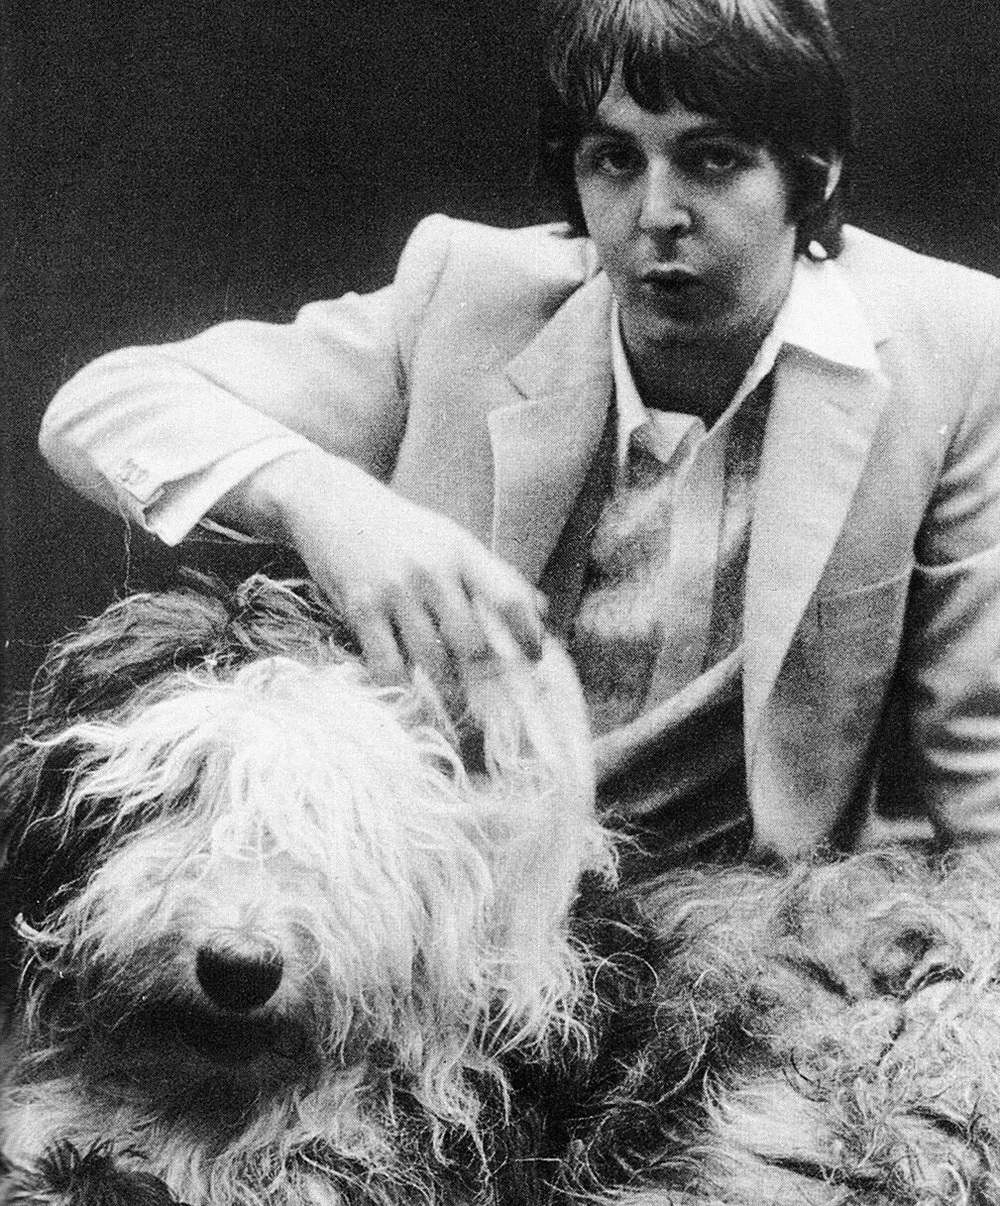 Paul McCartney on t he Beatles' Mad Day Out photo shoot, July 28th, 1968.